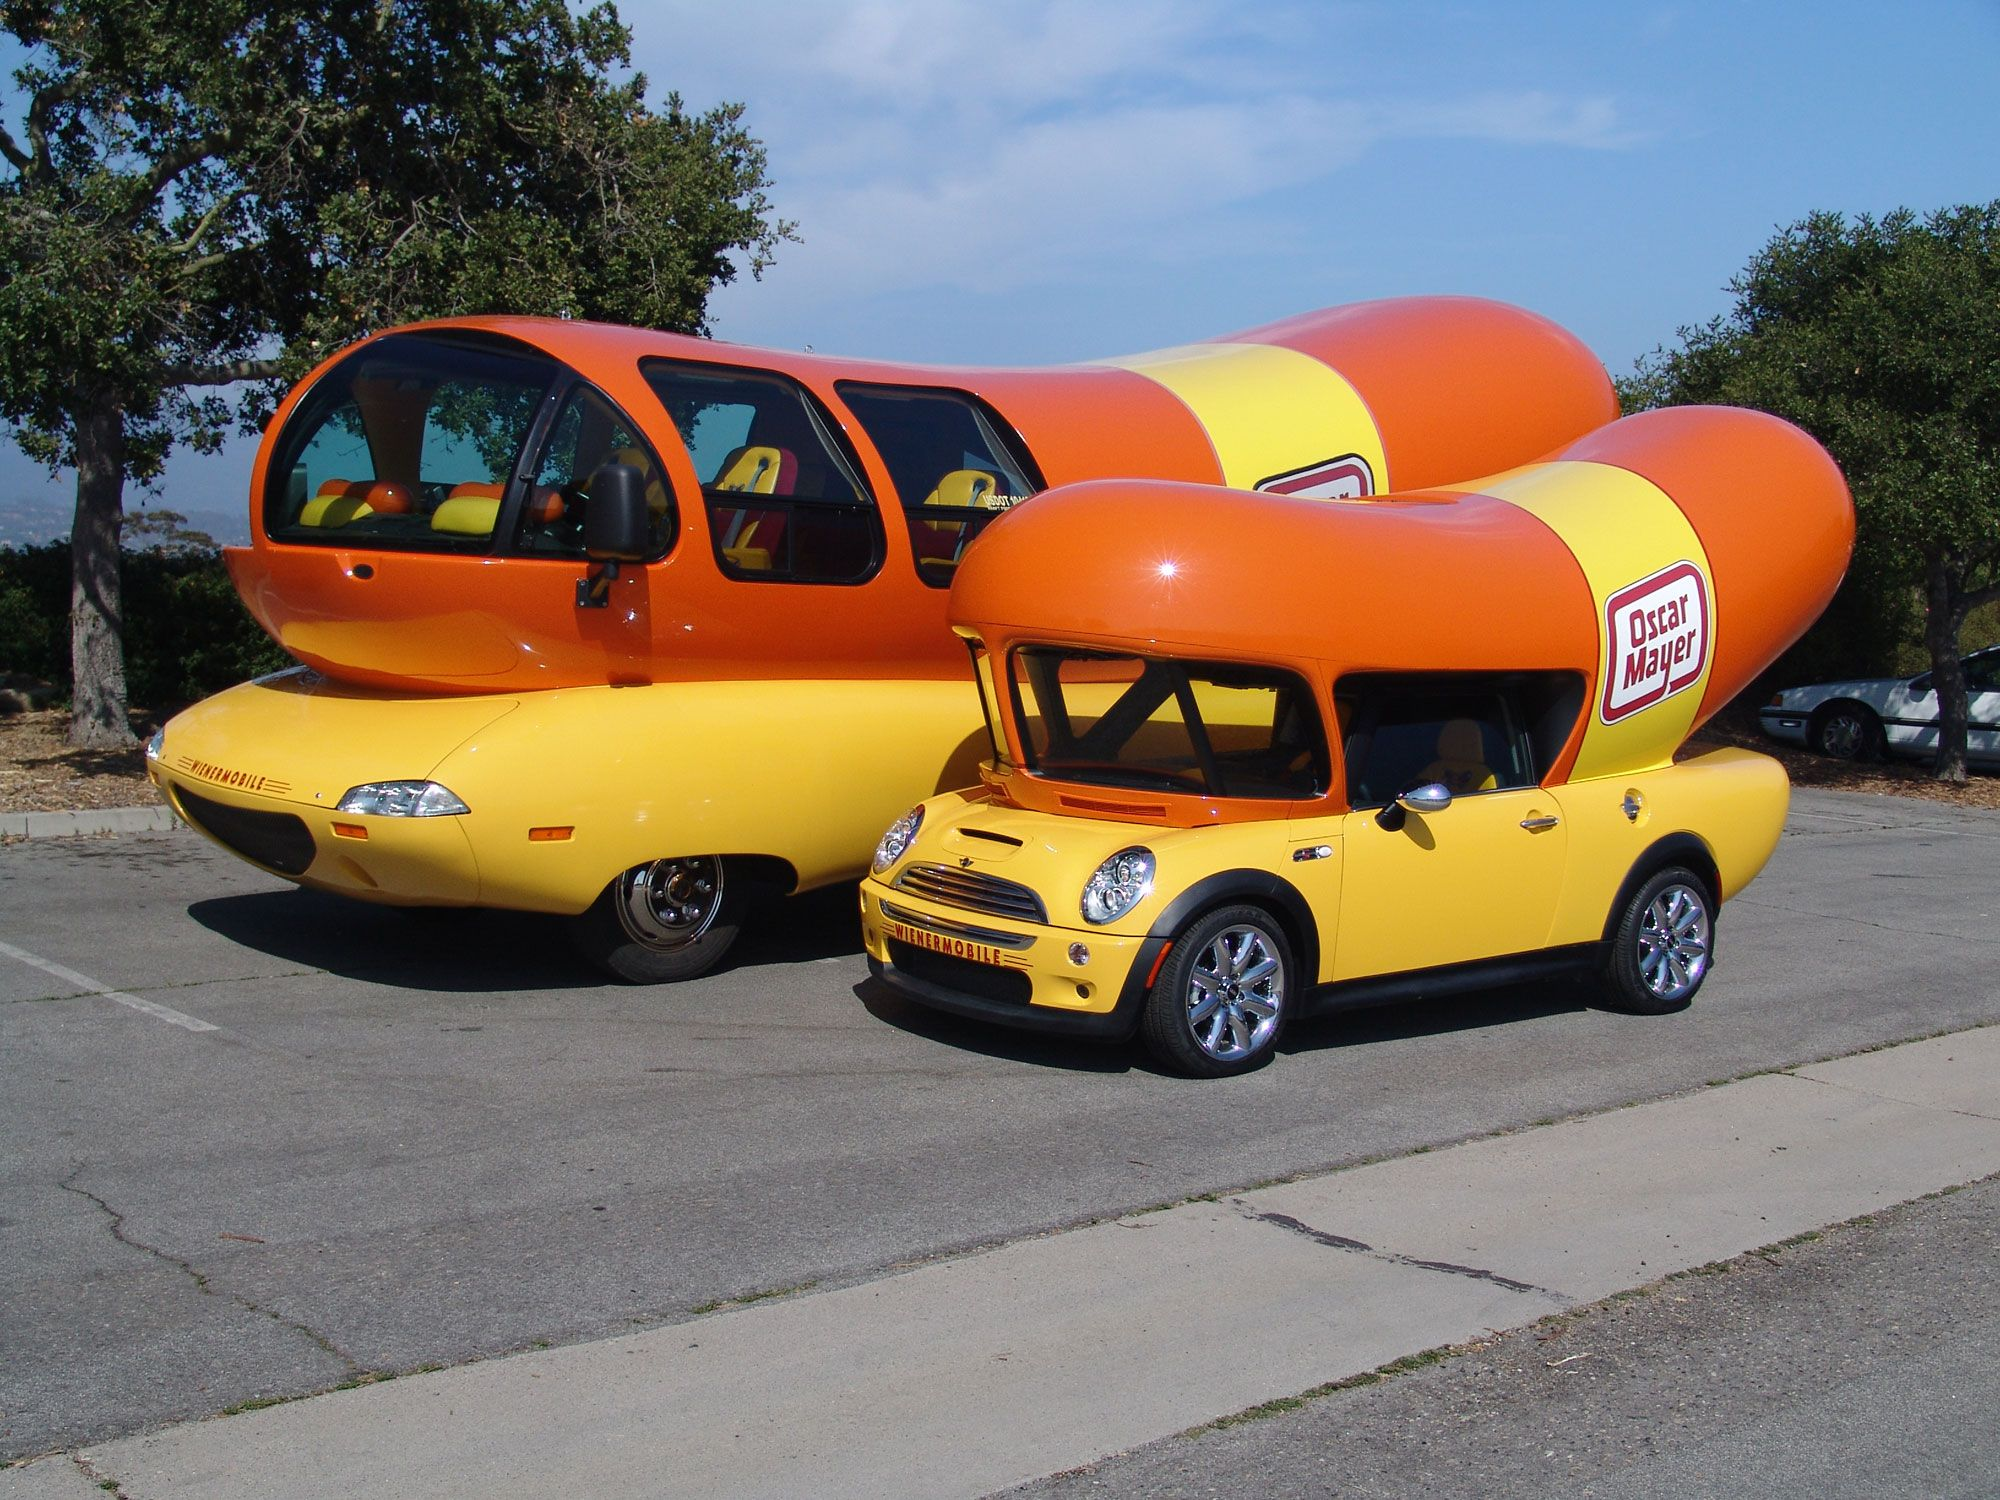 oscar mayer weinermobile and mini cooper weinermobile jpm entertainment advertising. Black Bedroom Furniture Sets. Home Design Ideas